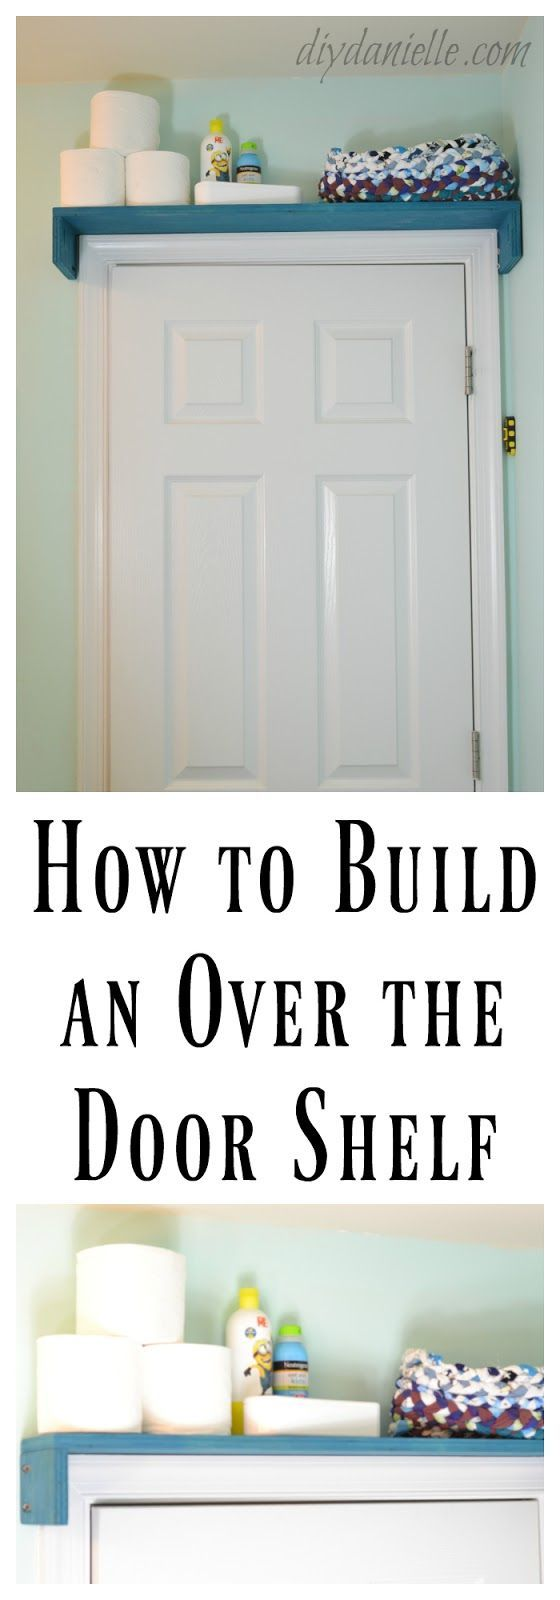 How to build a shelf for over the bathroom door to keep unsafe items away from c...